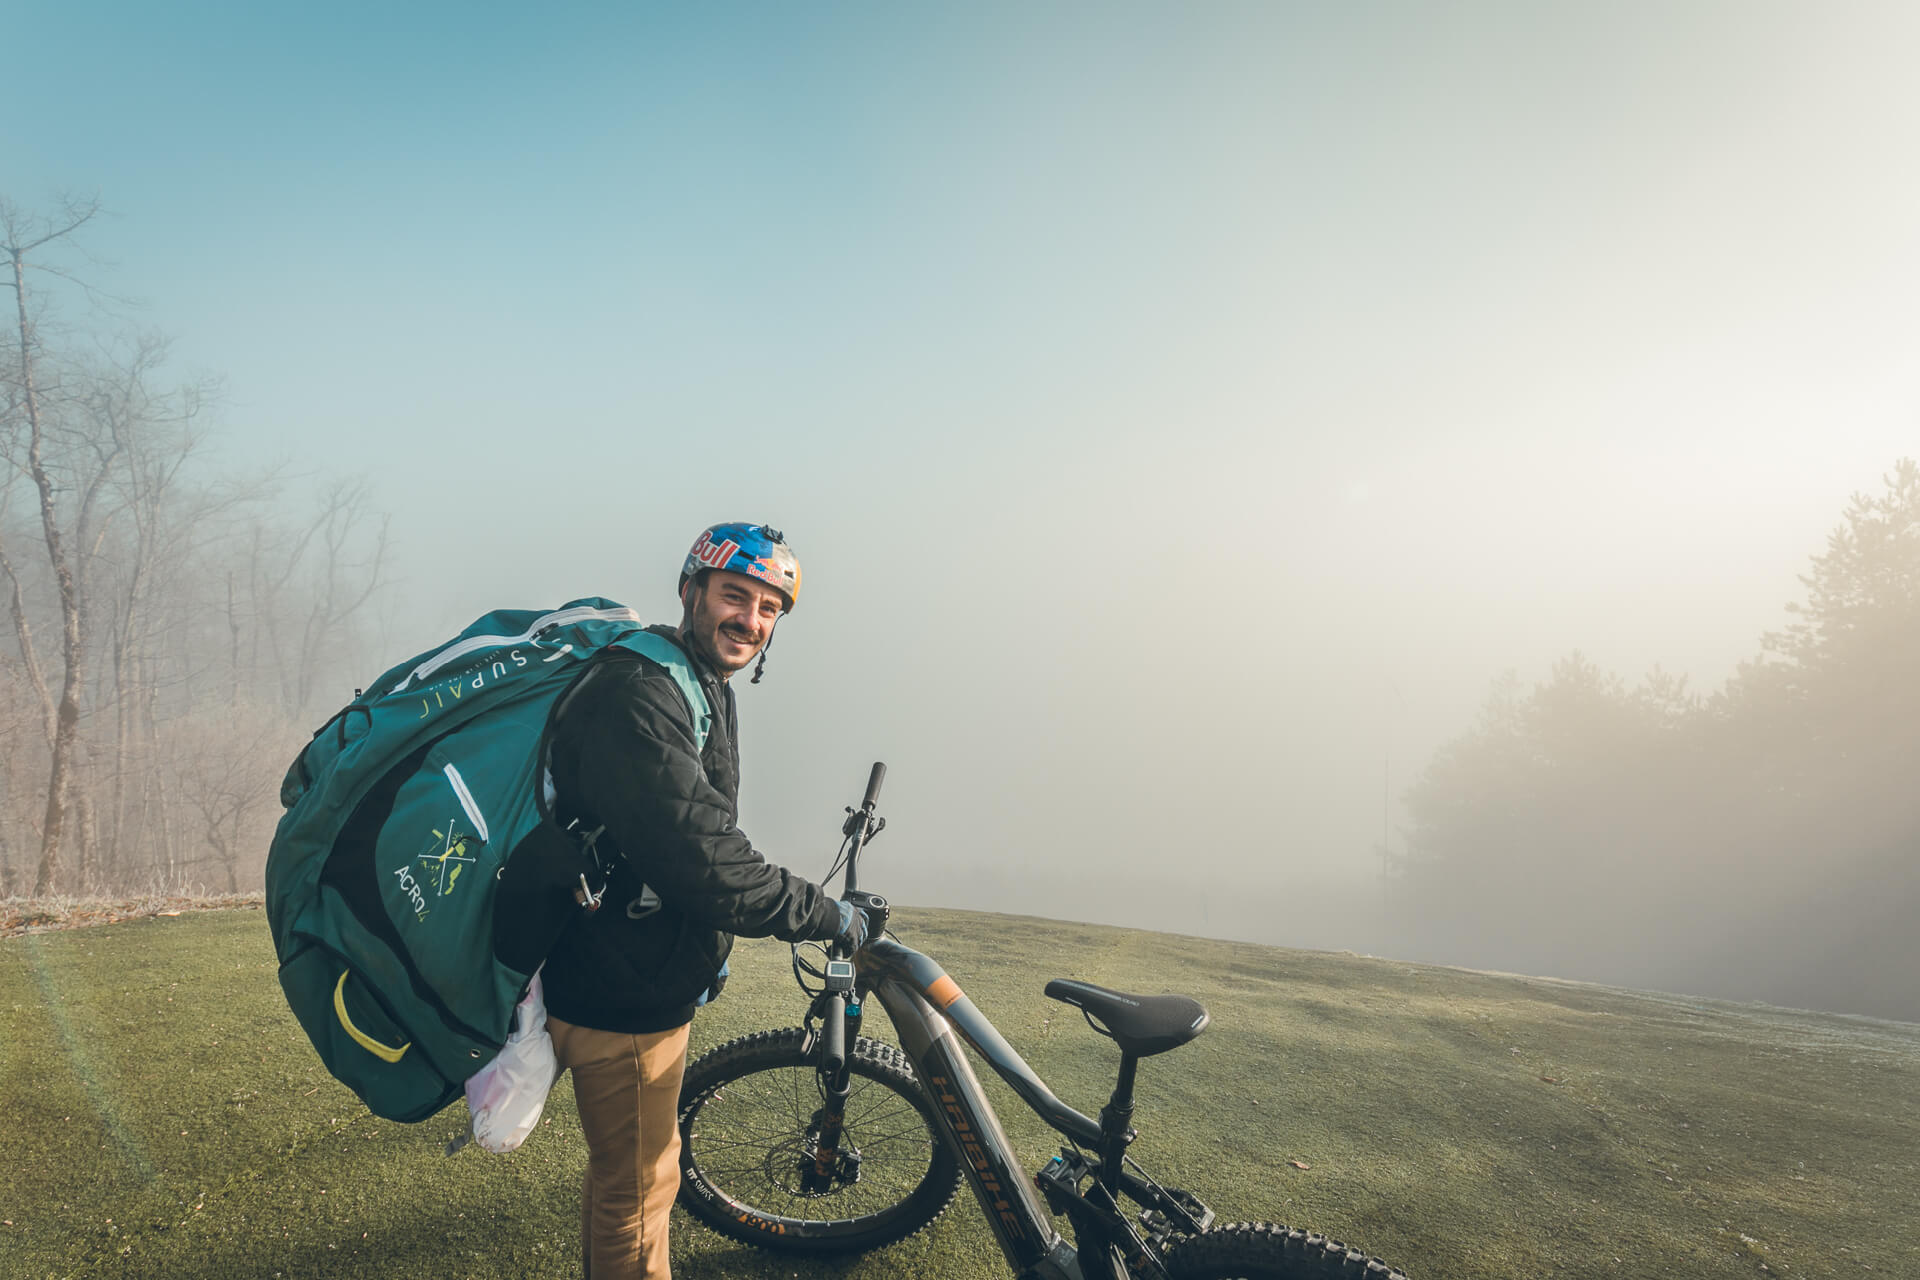 Haibike Hero Tim Alongi and his AllMtn 6.0 on an early foggy morning